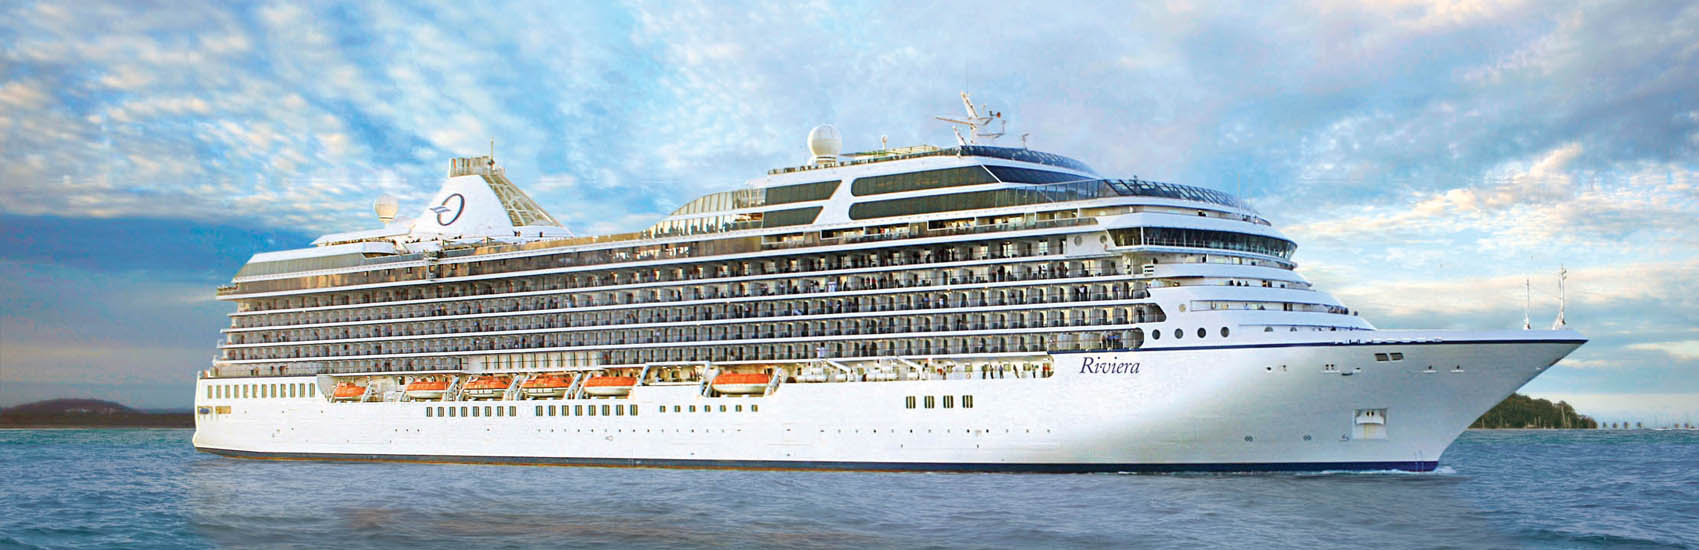 Choose Your Caribbean Adventure with Oceania Cruises 0